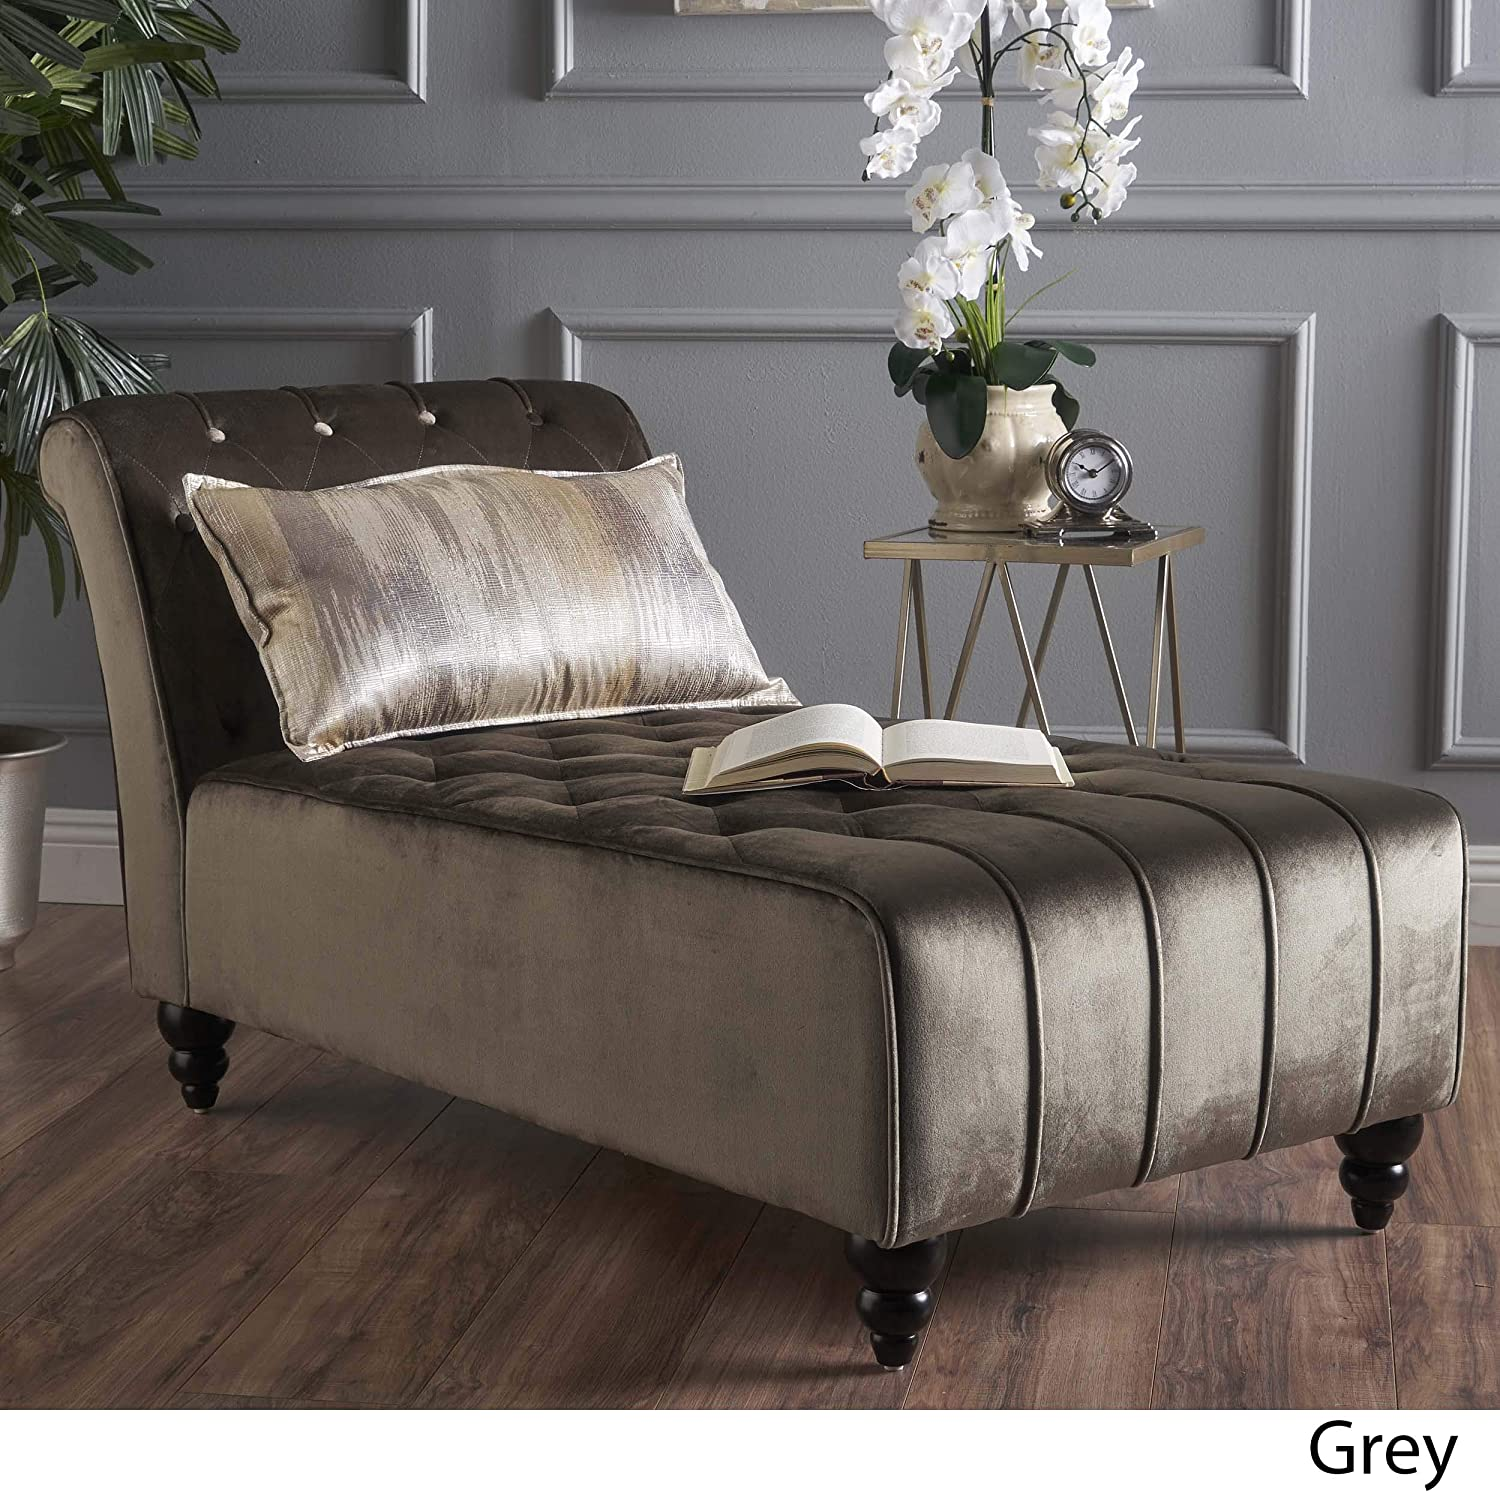 Rafaela Modern Glam Tufted Velvet Chaise Lounge with Scrolled Backrest Gray and Dark Brown